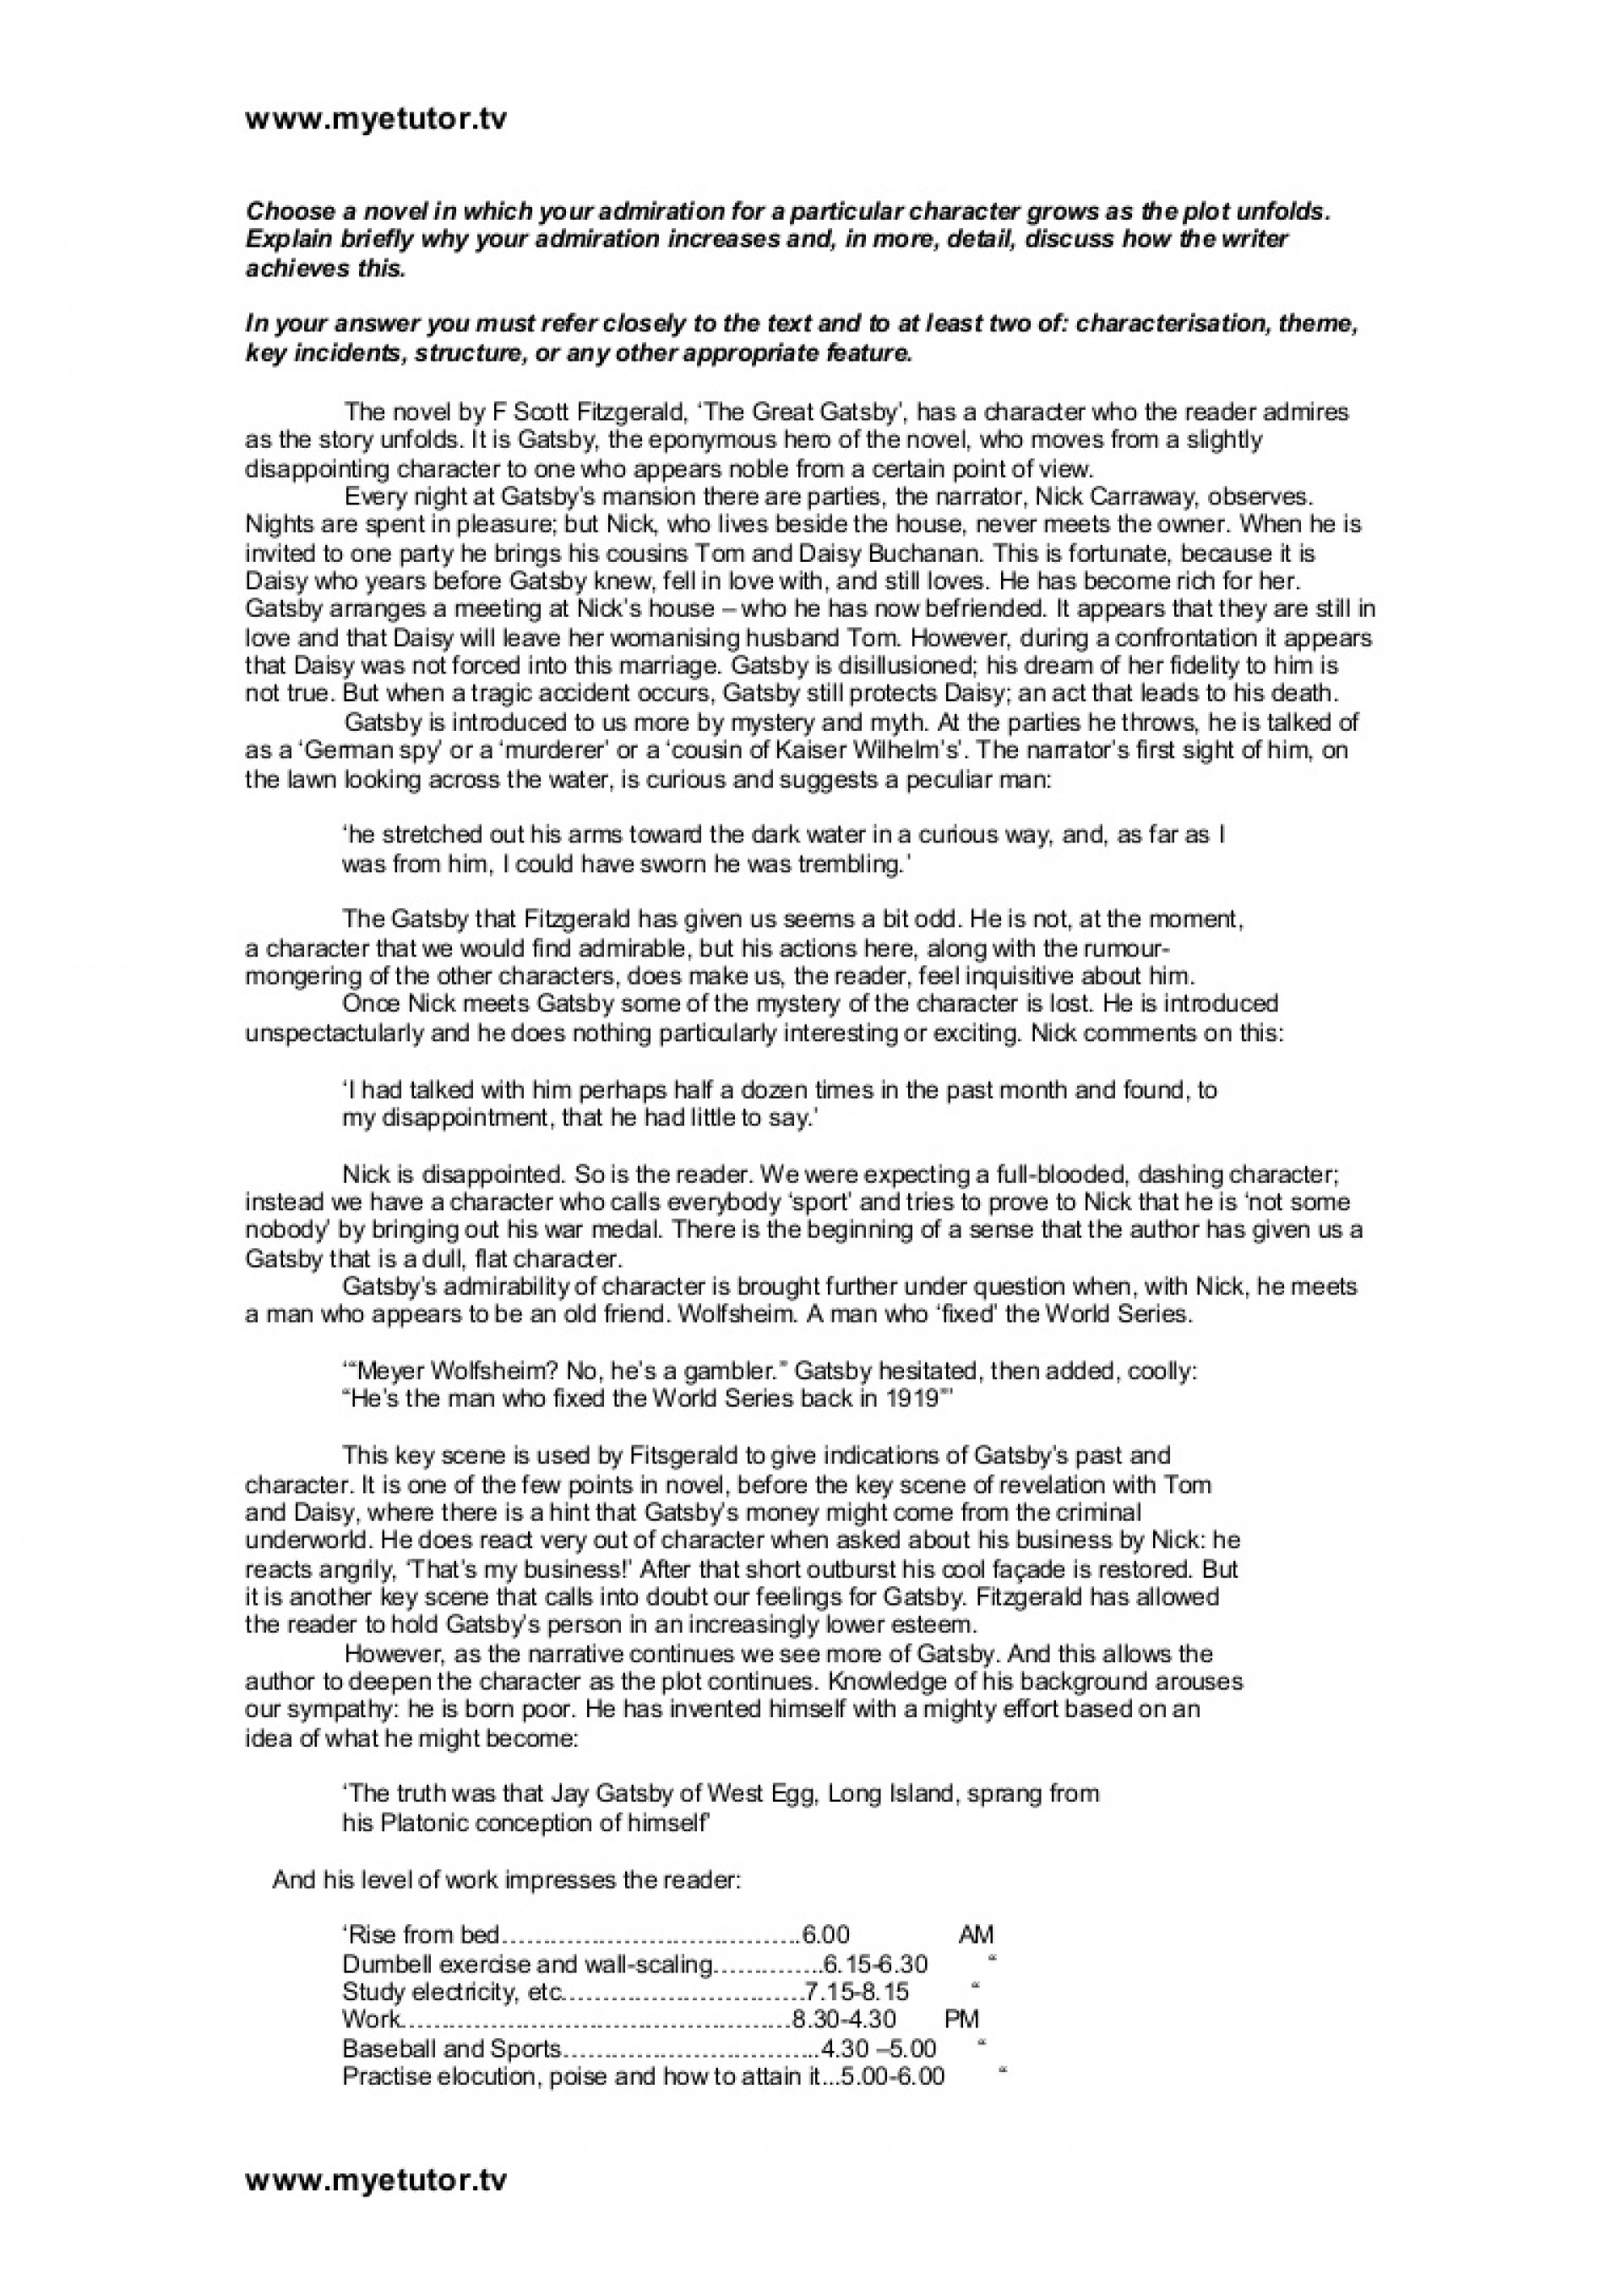 004 Essay Example Thegreatgatsby Essayoncharacter Phpapp01 Thumbnail The Great Gatsby Stirring Themes Money Theme American Dream 1920